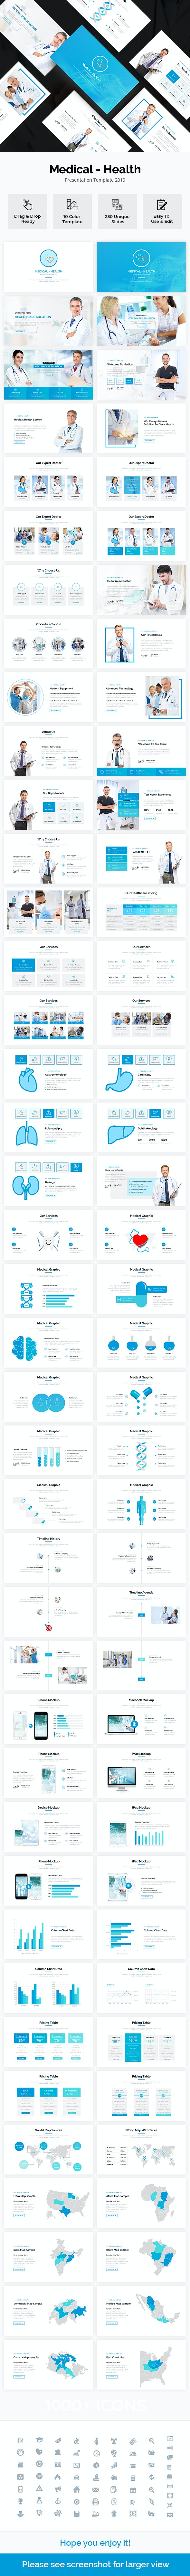 Medical-Health Powerpoint Template 2019 - PowerPoint Templates Presentation Templates